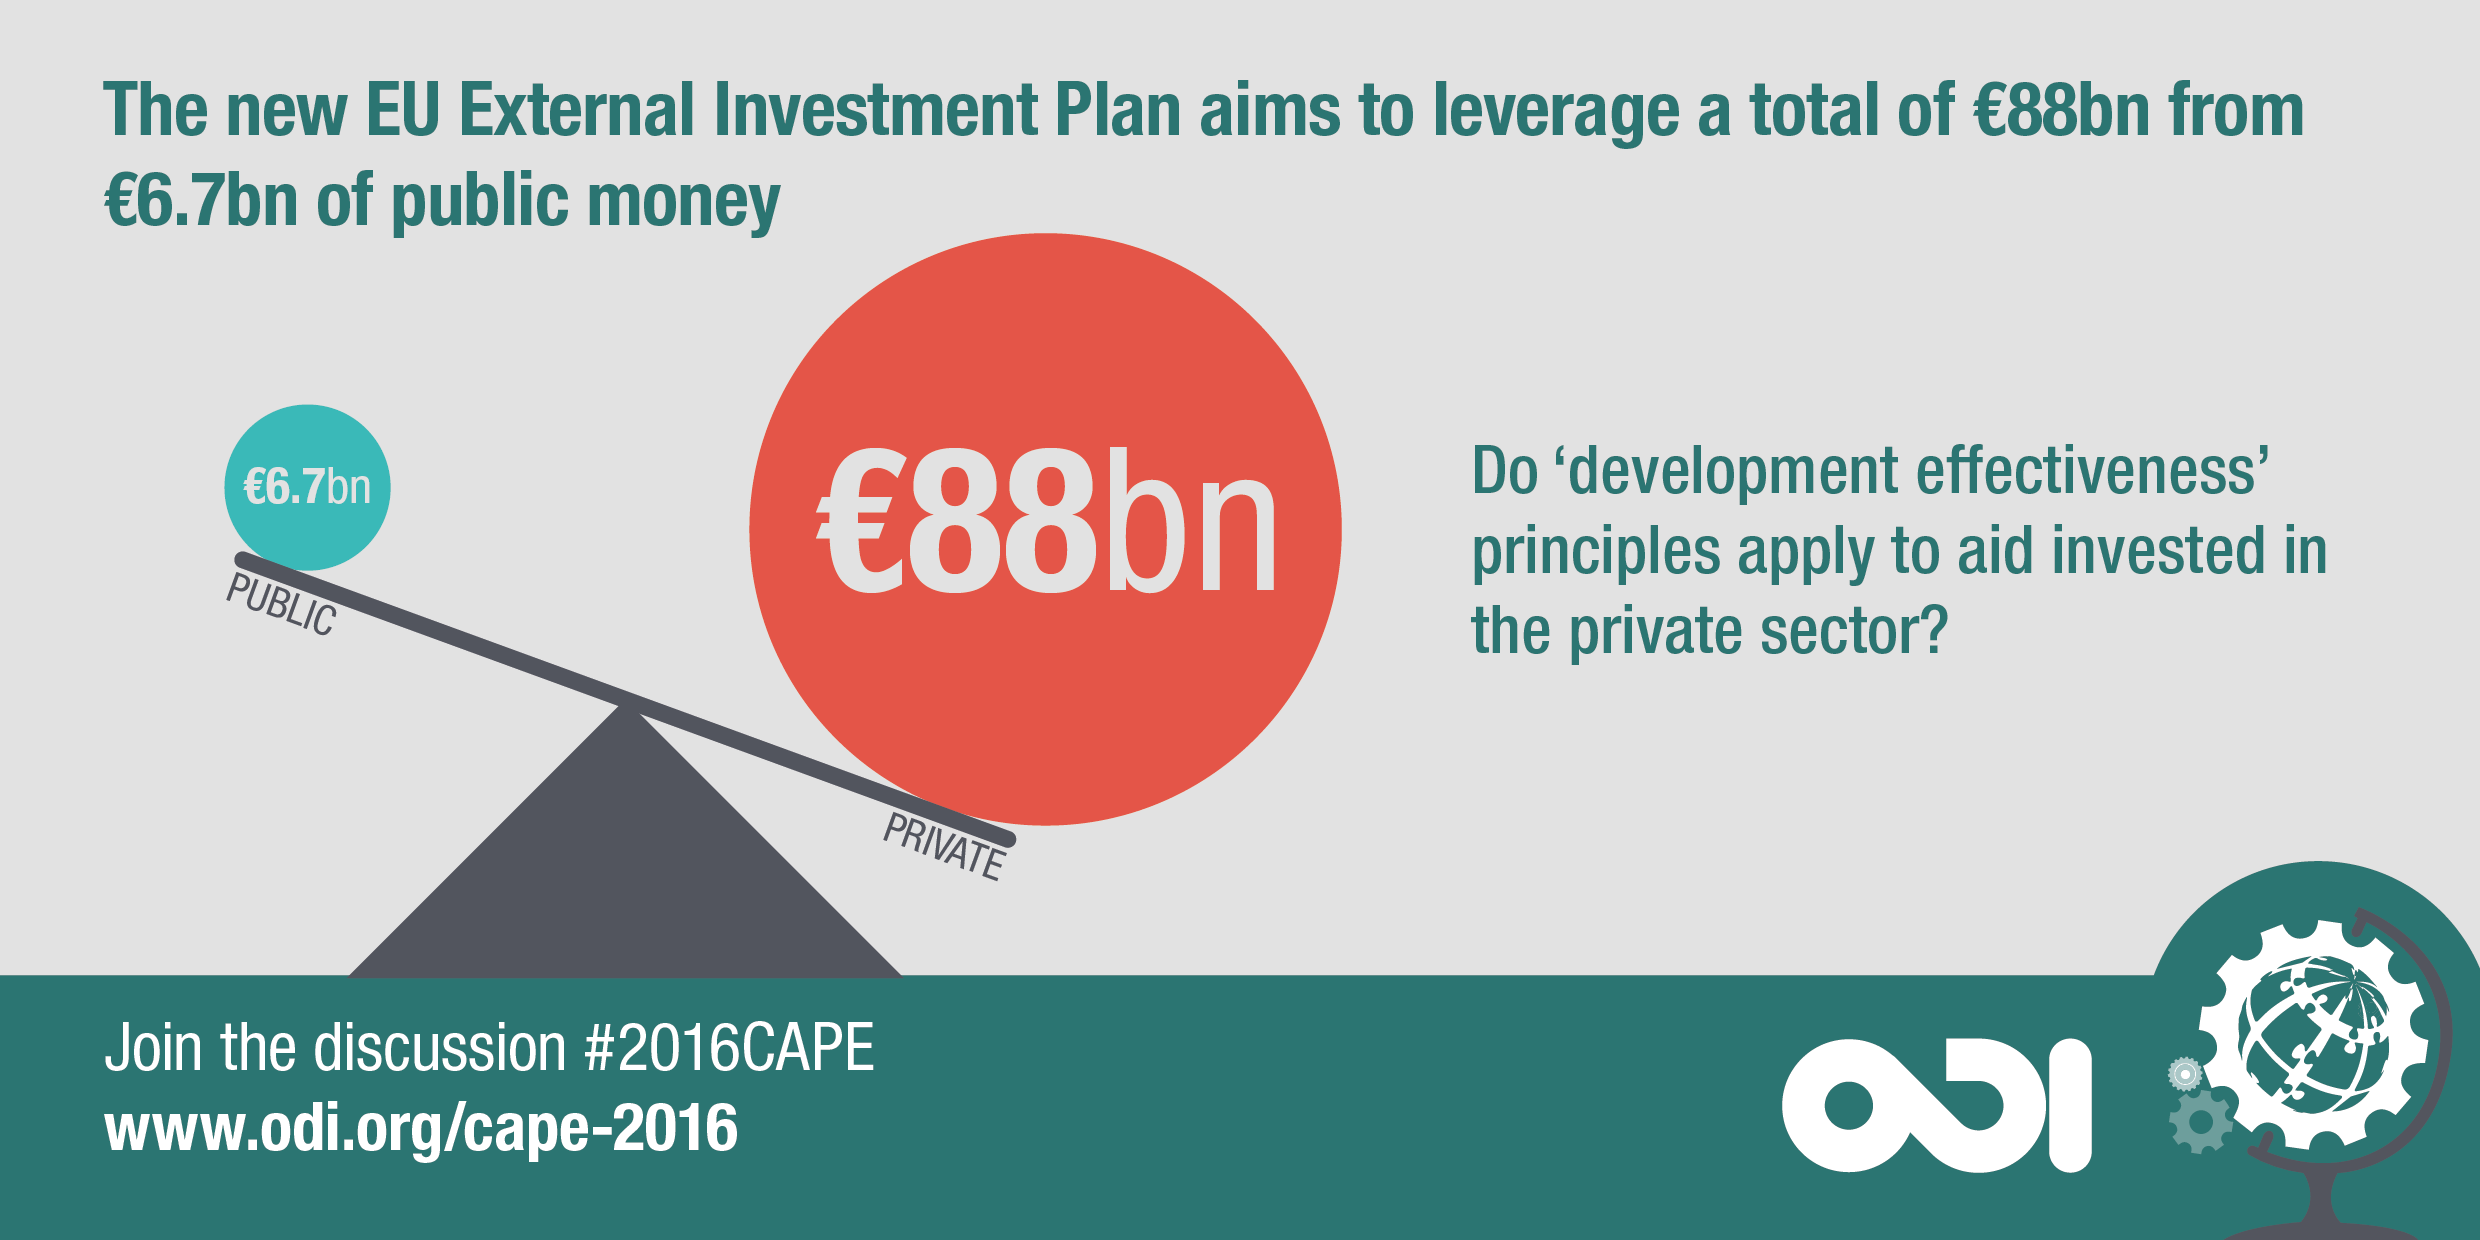 Do 'development effectiveness' principles apply to aid invested in the private sector?